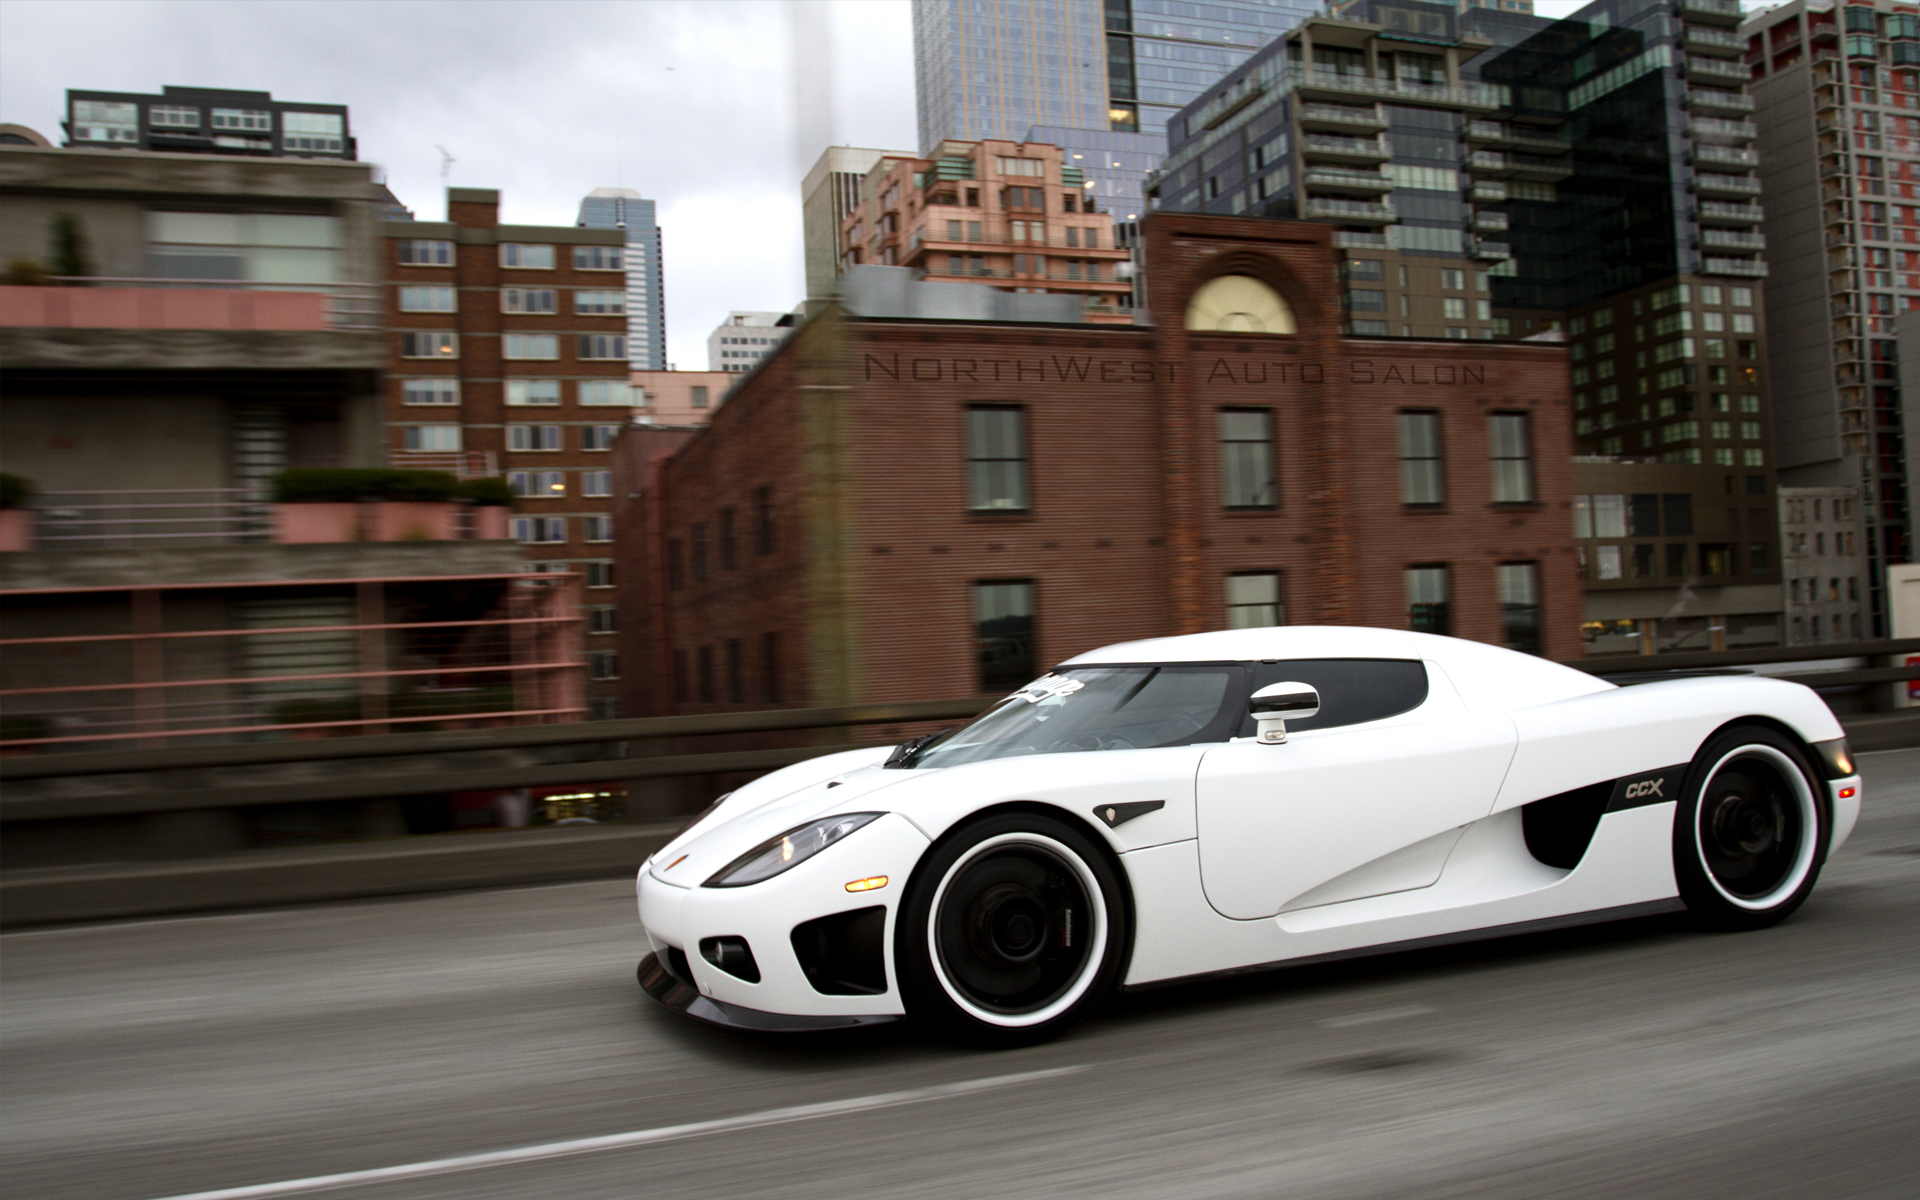 Koenigsegg Ccx wallpaper 117058 1920x1200